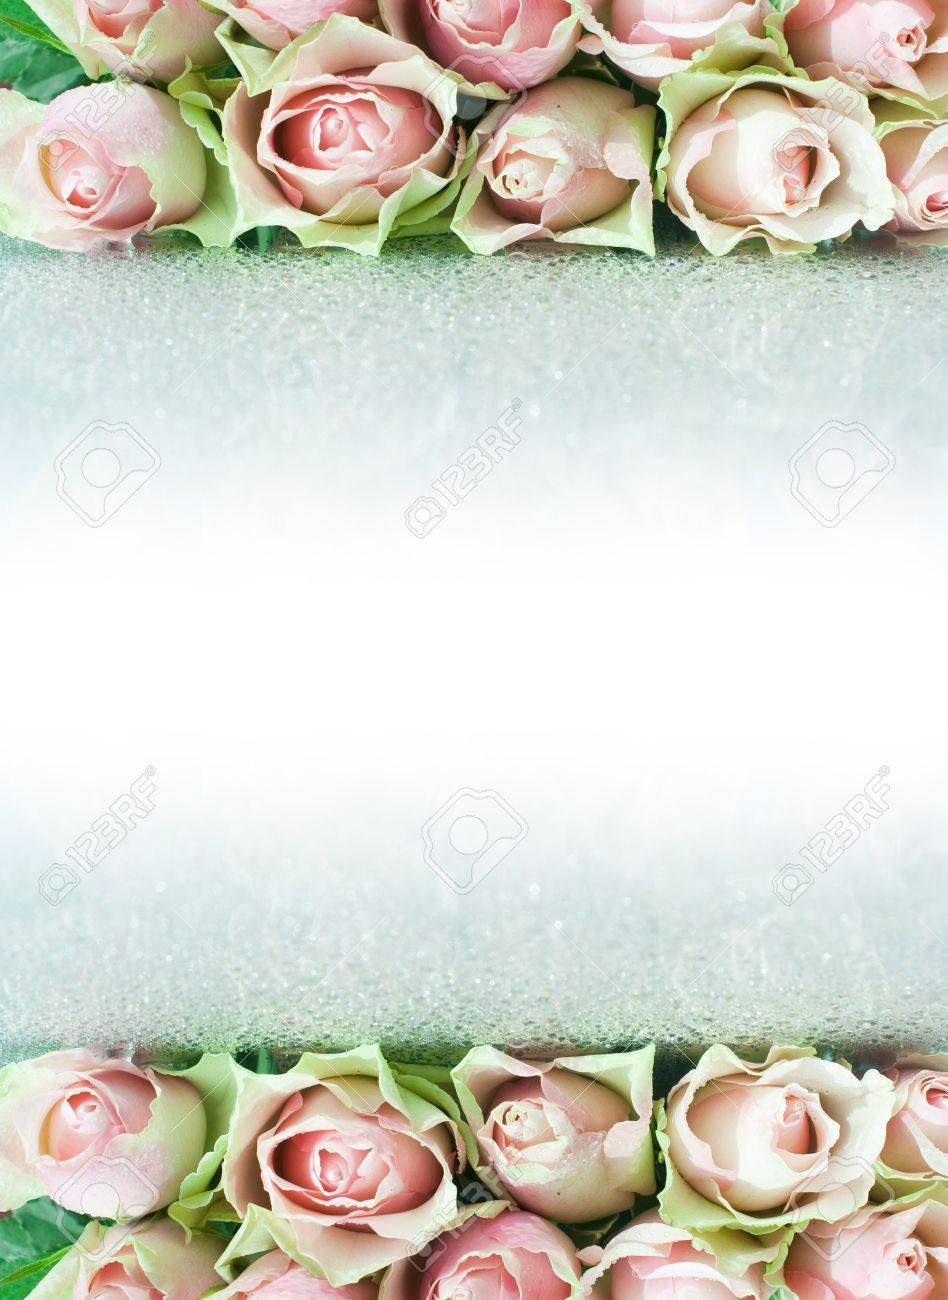 Roses with drops making a border. Reflection Stock Photo - 11618261